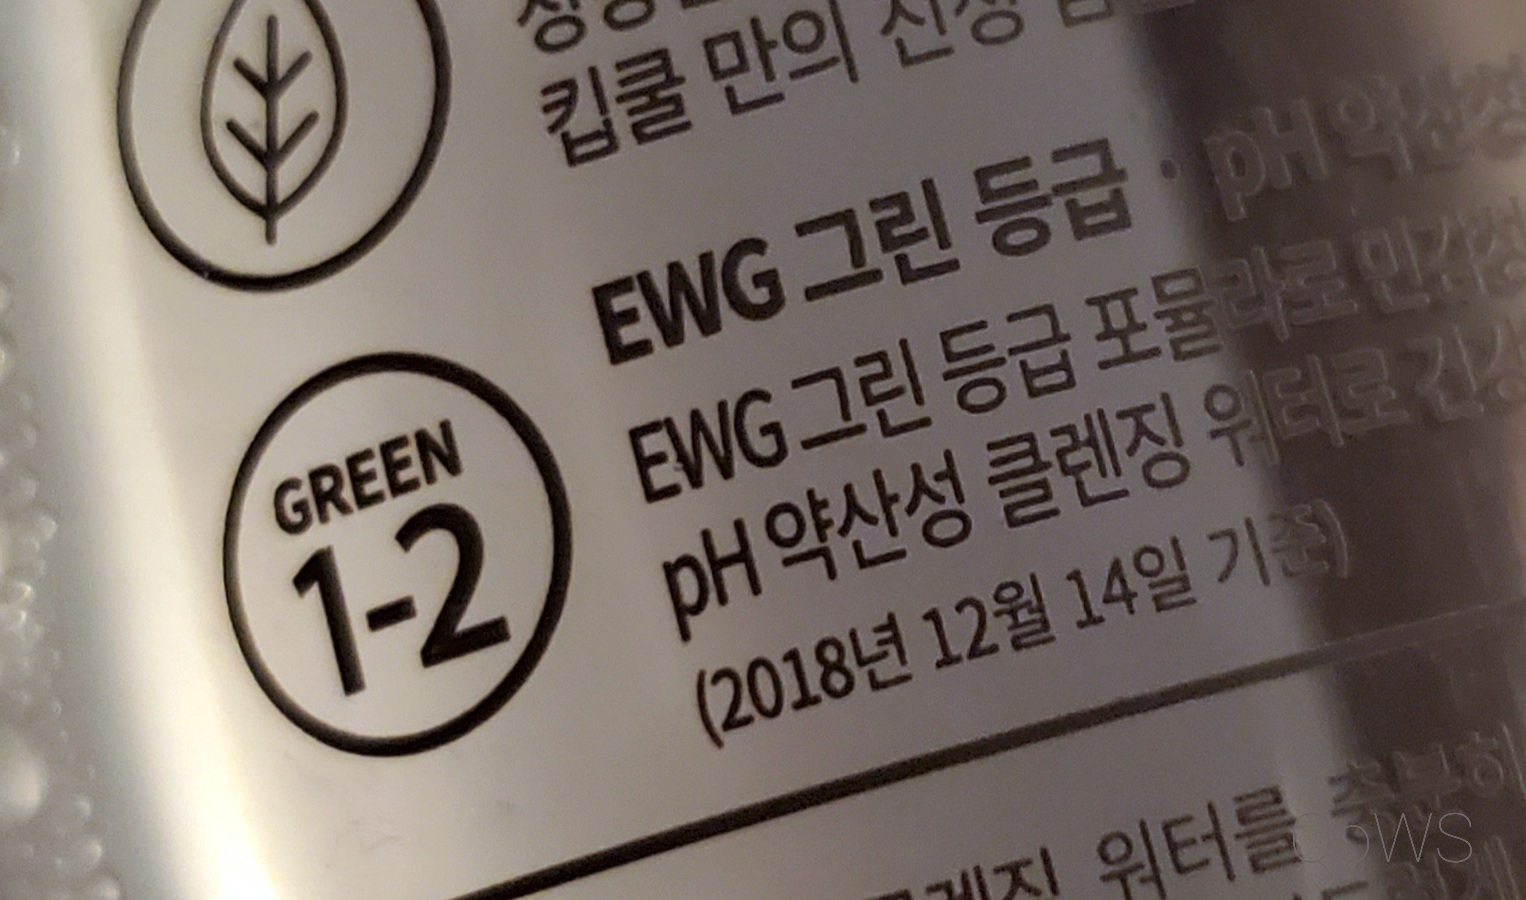 ewg k-beauty product rating keep cool